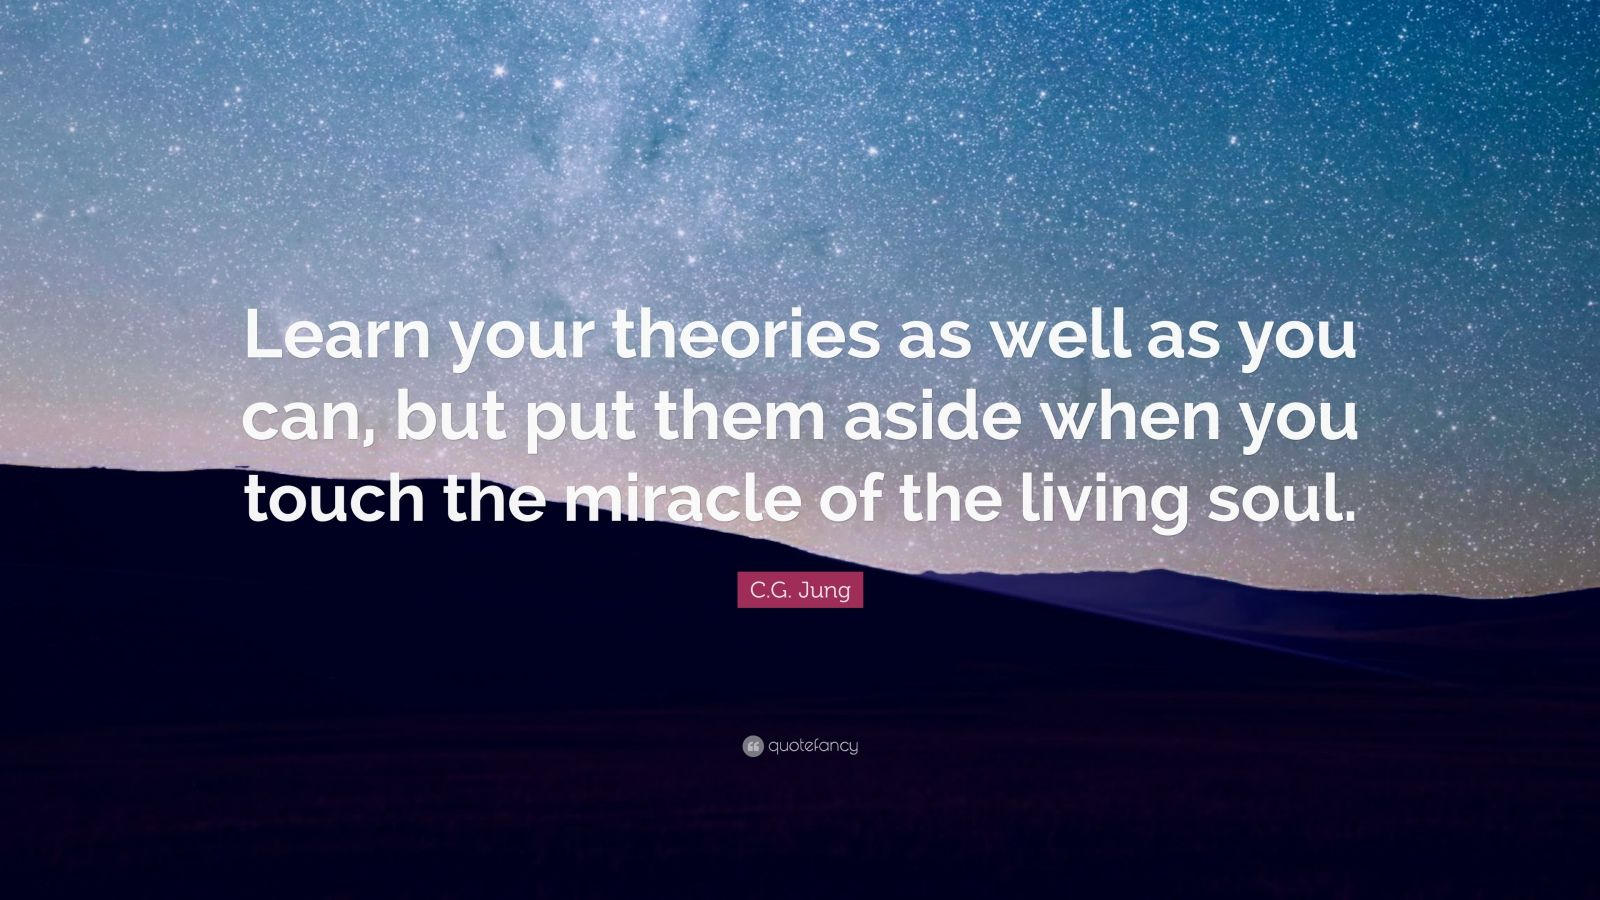 """C.G. Jung Quote: """"Learn your theories as well as you can, but put them aside when you touch the miracle of the living soul."""""""